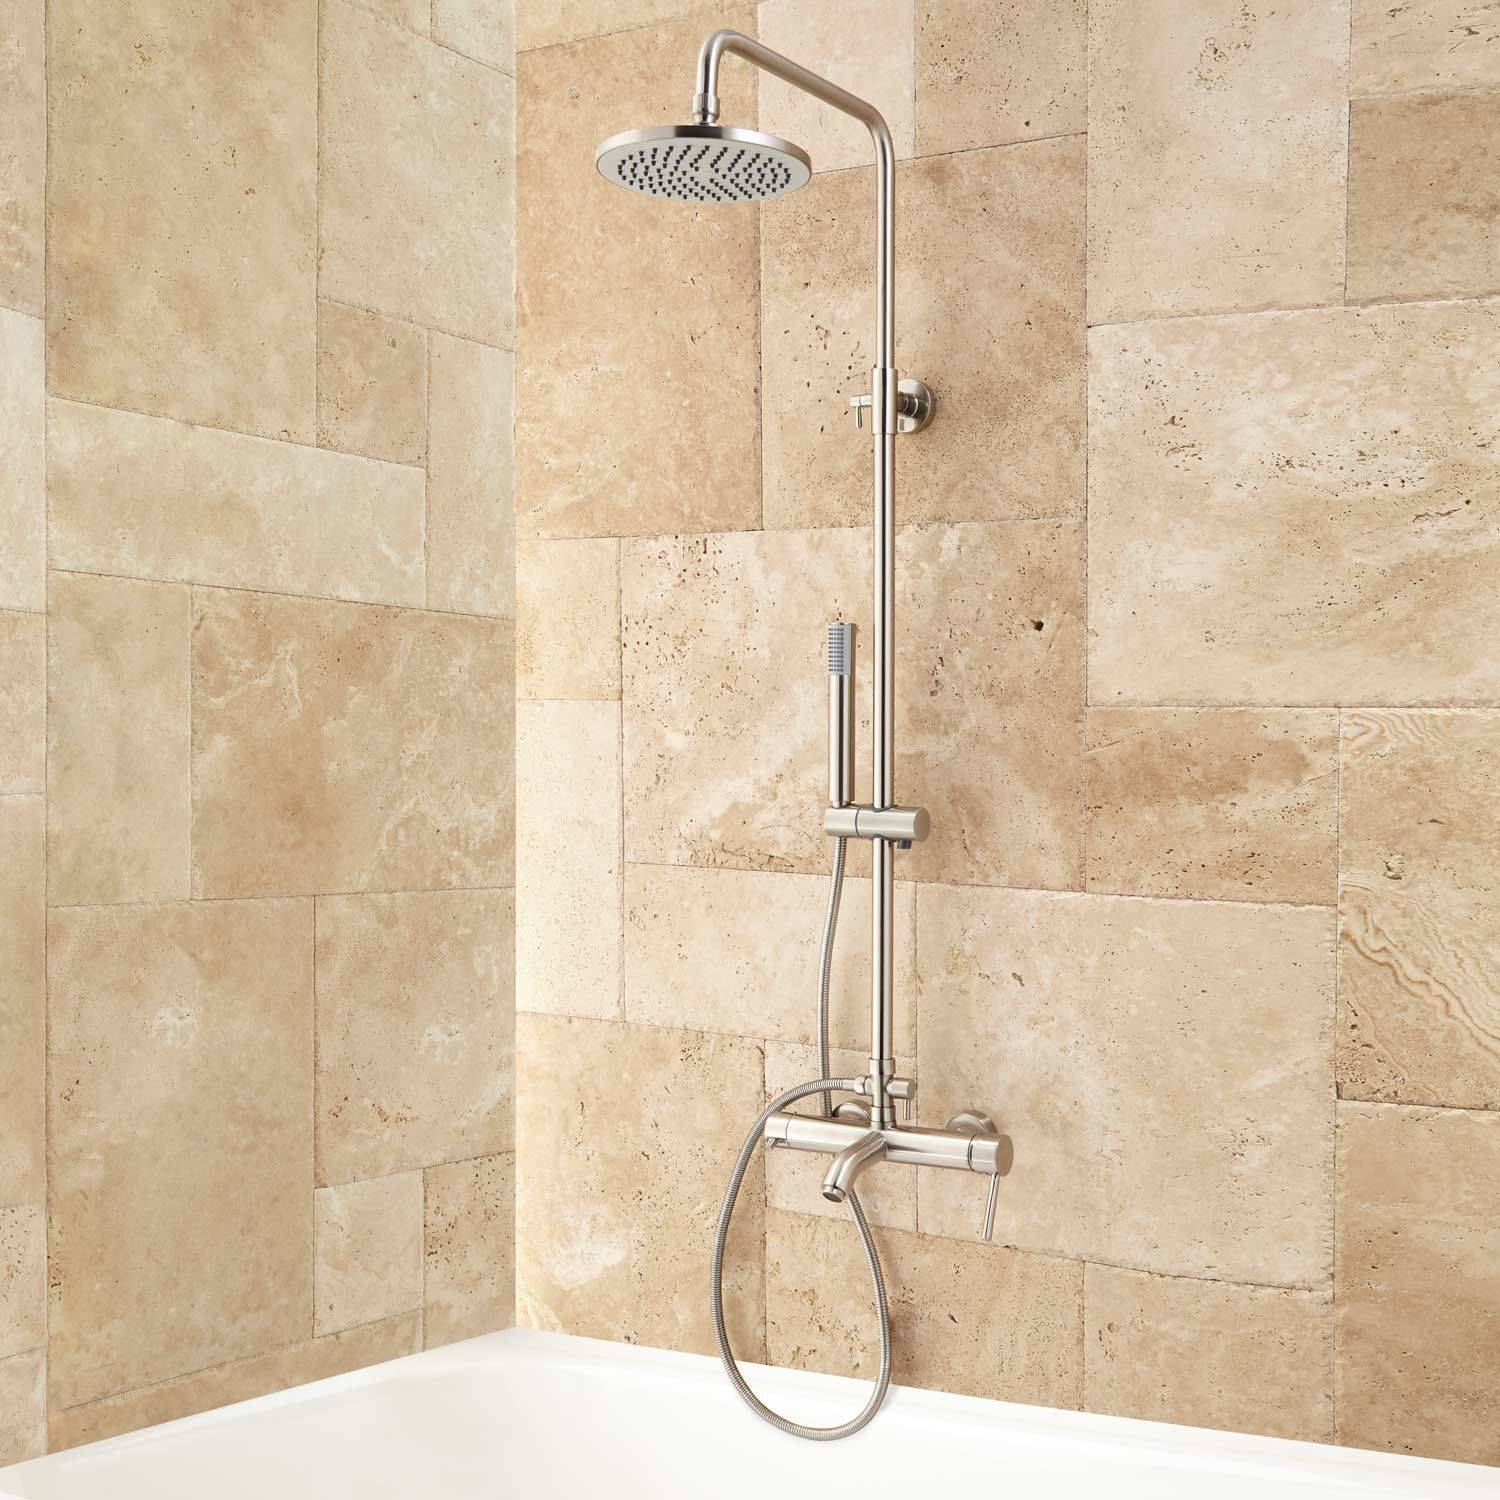 Ansari Exposed Pipe Tub and Shower Set Shower tub